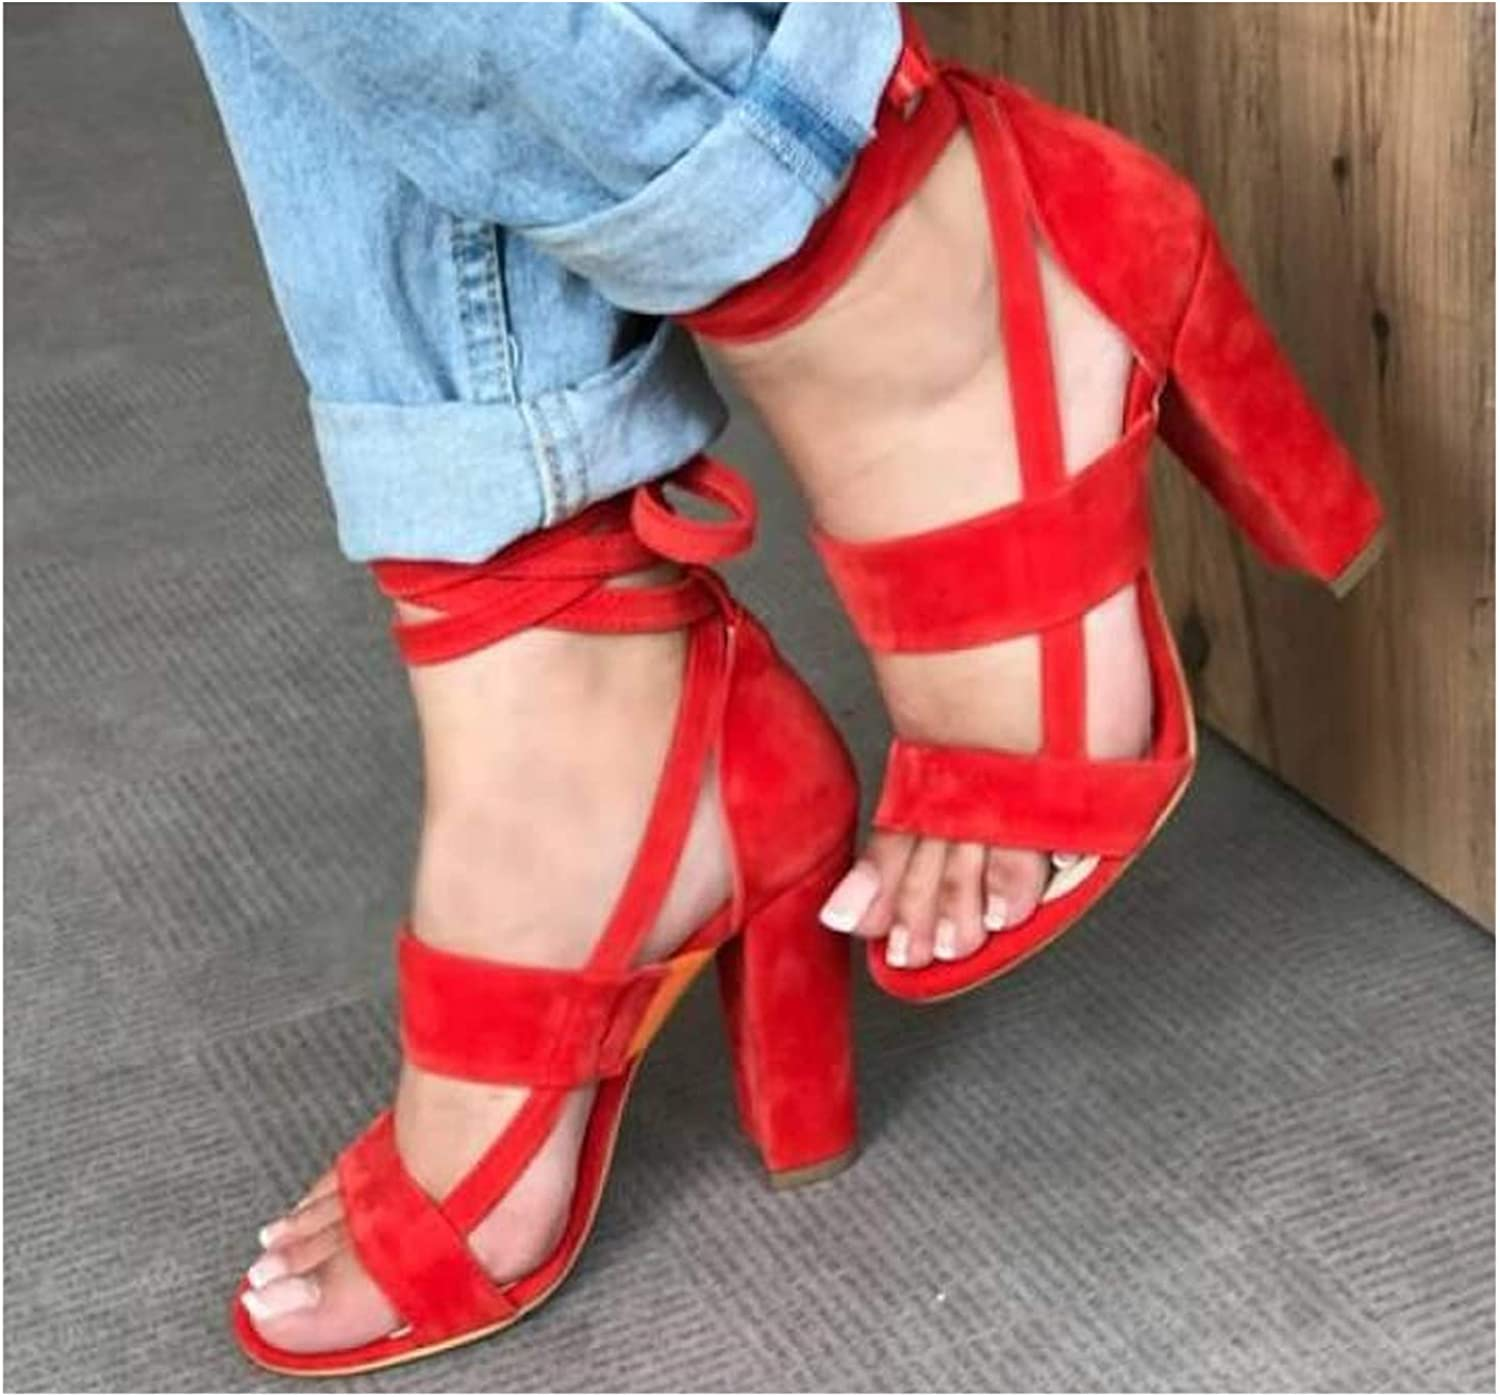 Sizhangdd Summer shoes Woman Sandals High Heel Gladiator Cross-Tied Lace-Up Casual Ankle Strap Flock